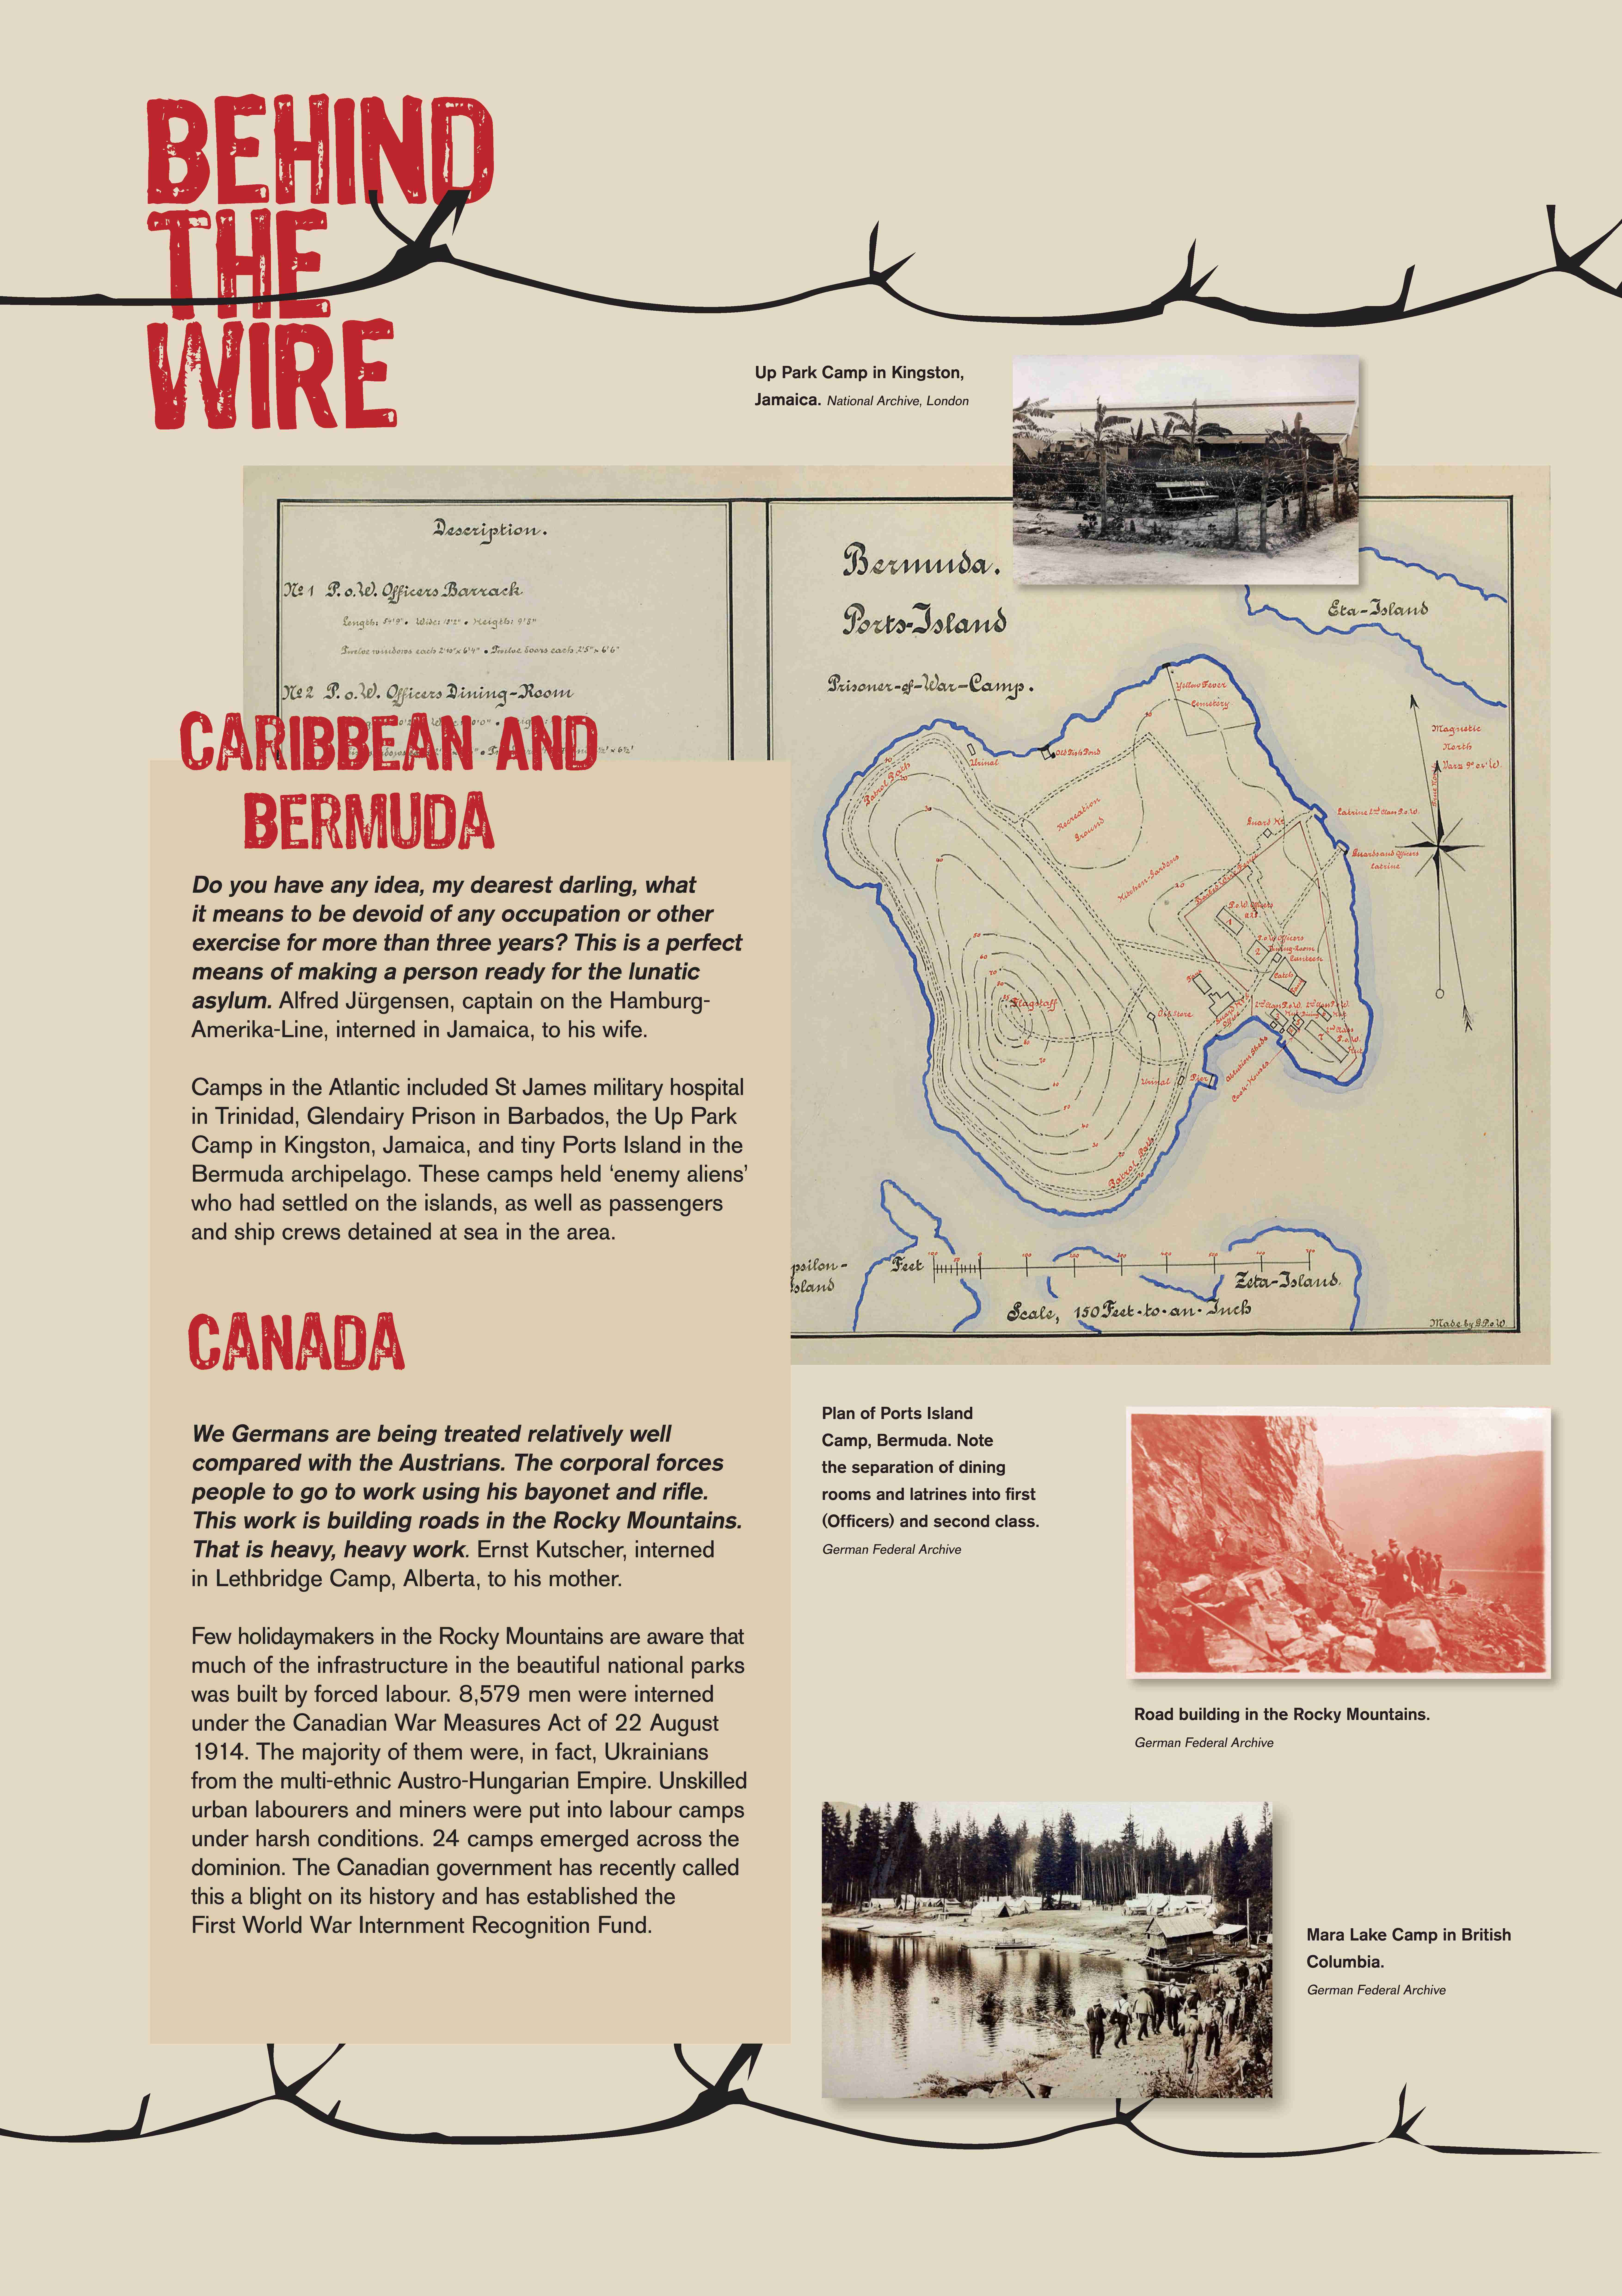 06-Behind the Wire-A1-Exhibition-Canada-Caribbean _DIGITAL VERSION-page-001-compressed